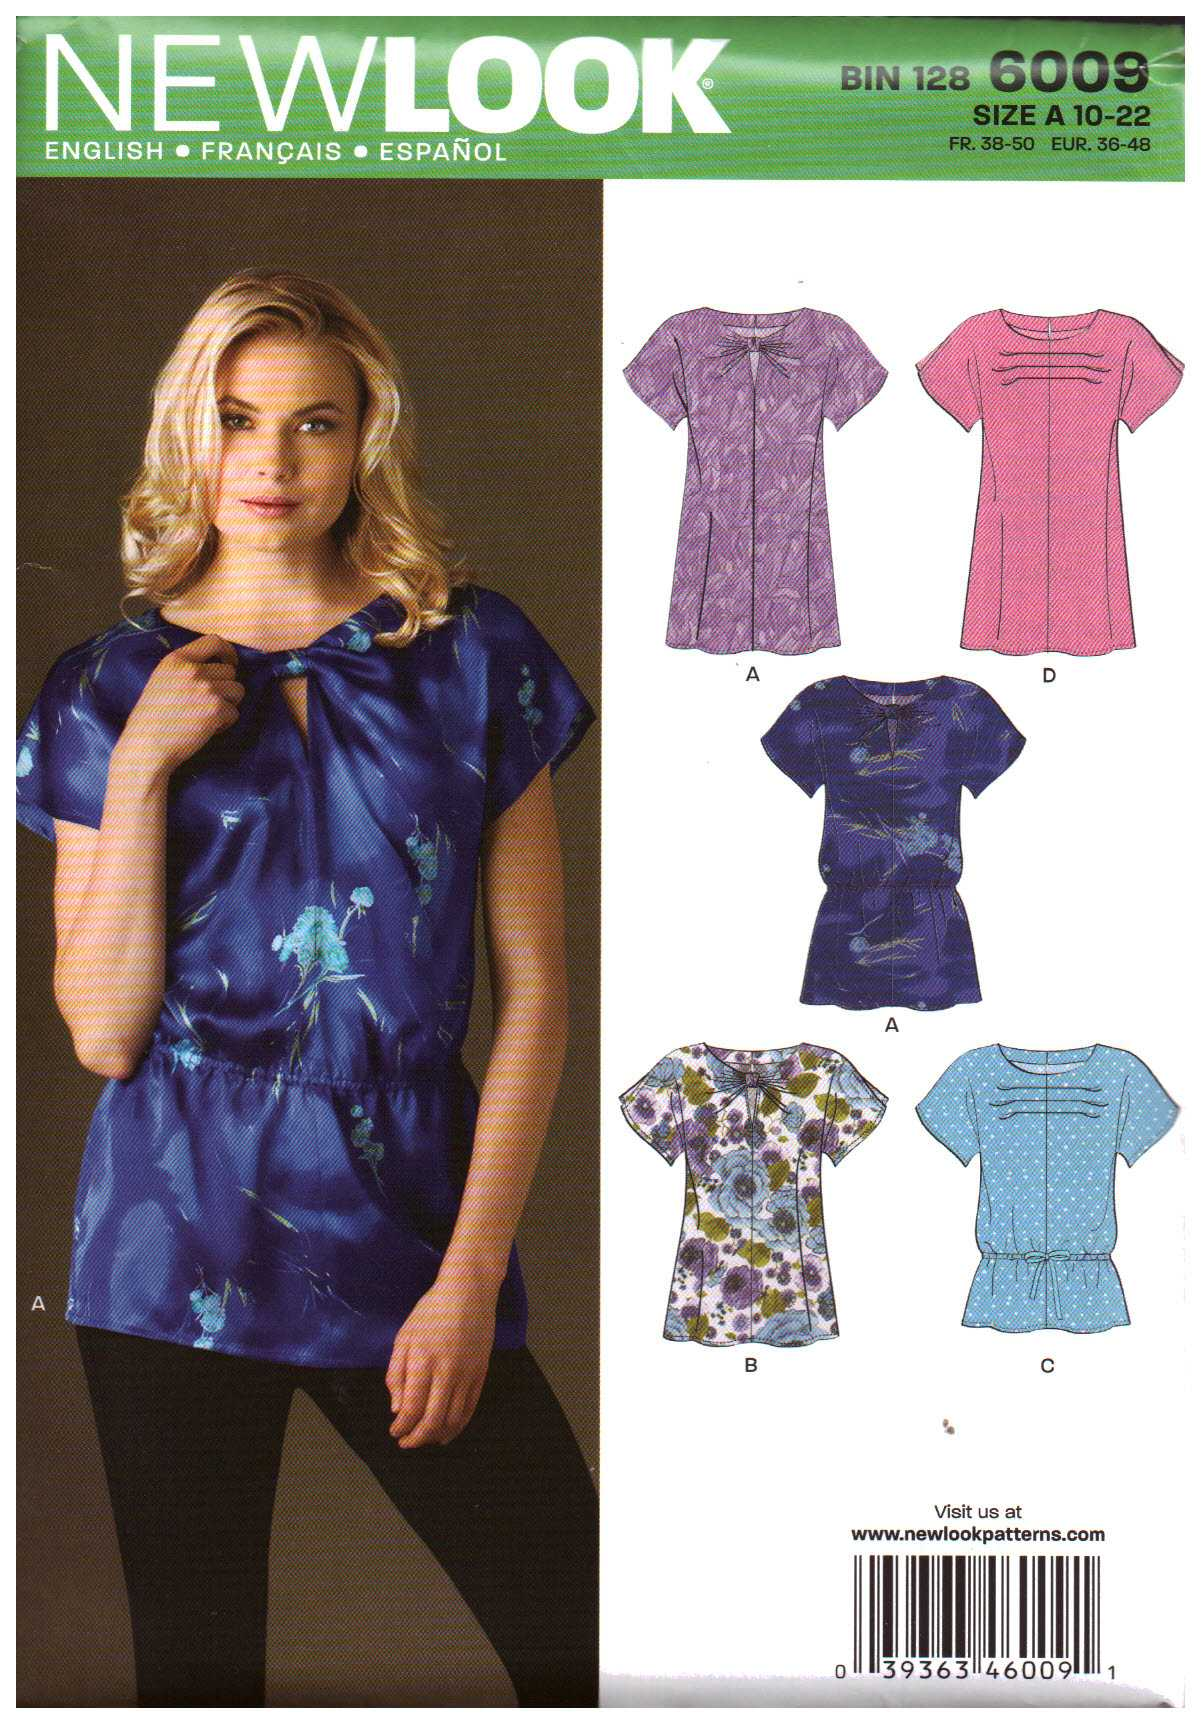 81c937e7171 New Look 6009 Top Size: A 10-22 Uncut Sewing Pattern